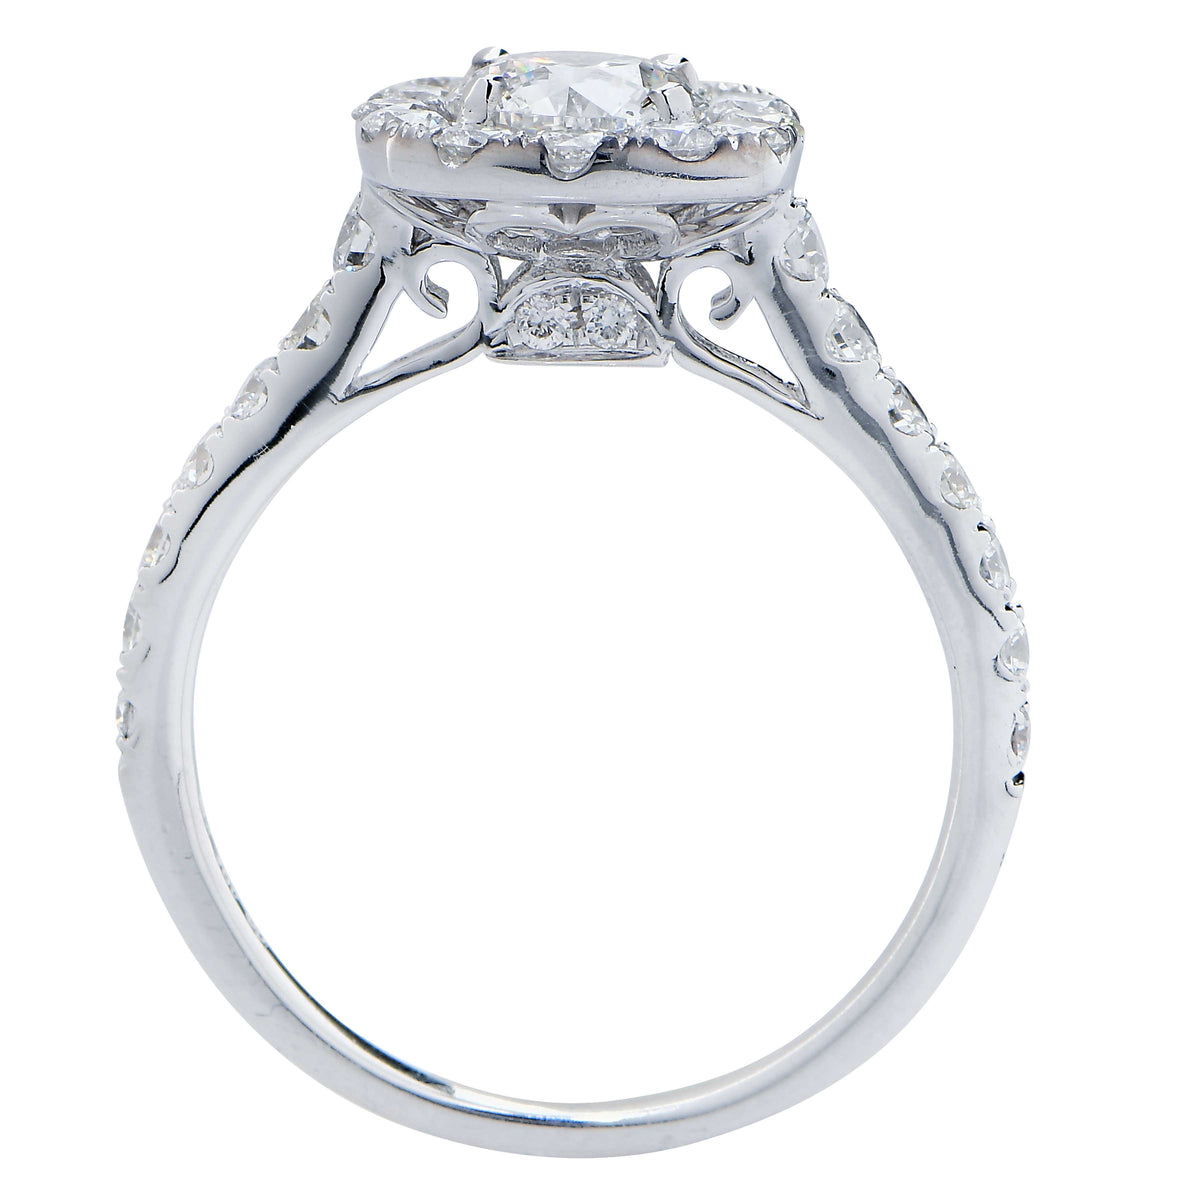 .82 Carat GIA Graded Round Brilliant Cut Diamond Engagement Ring in 18 Karat White Gold